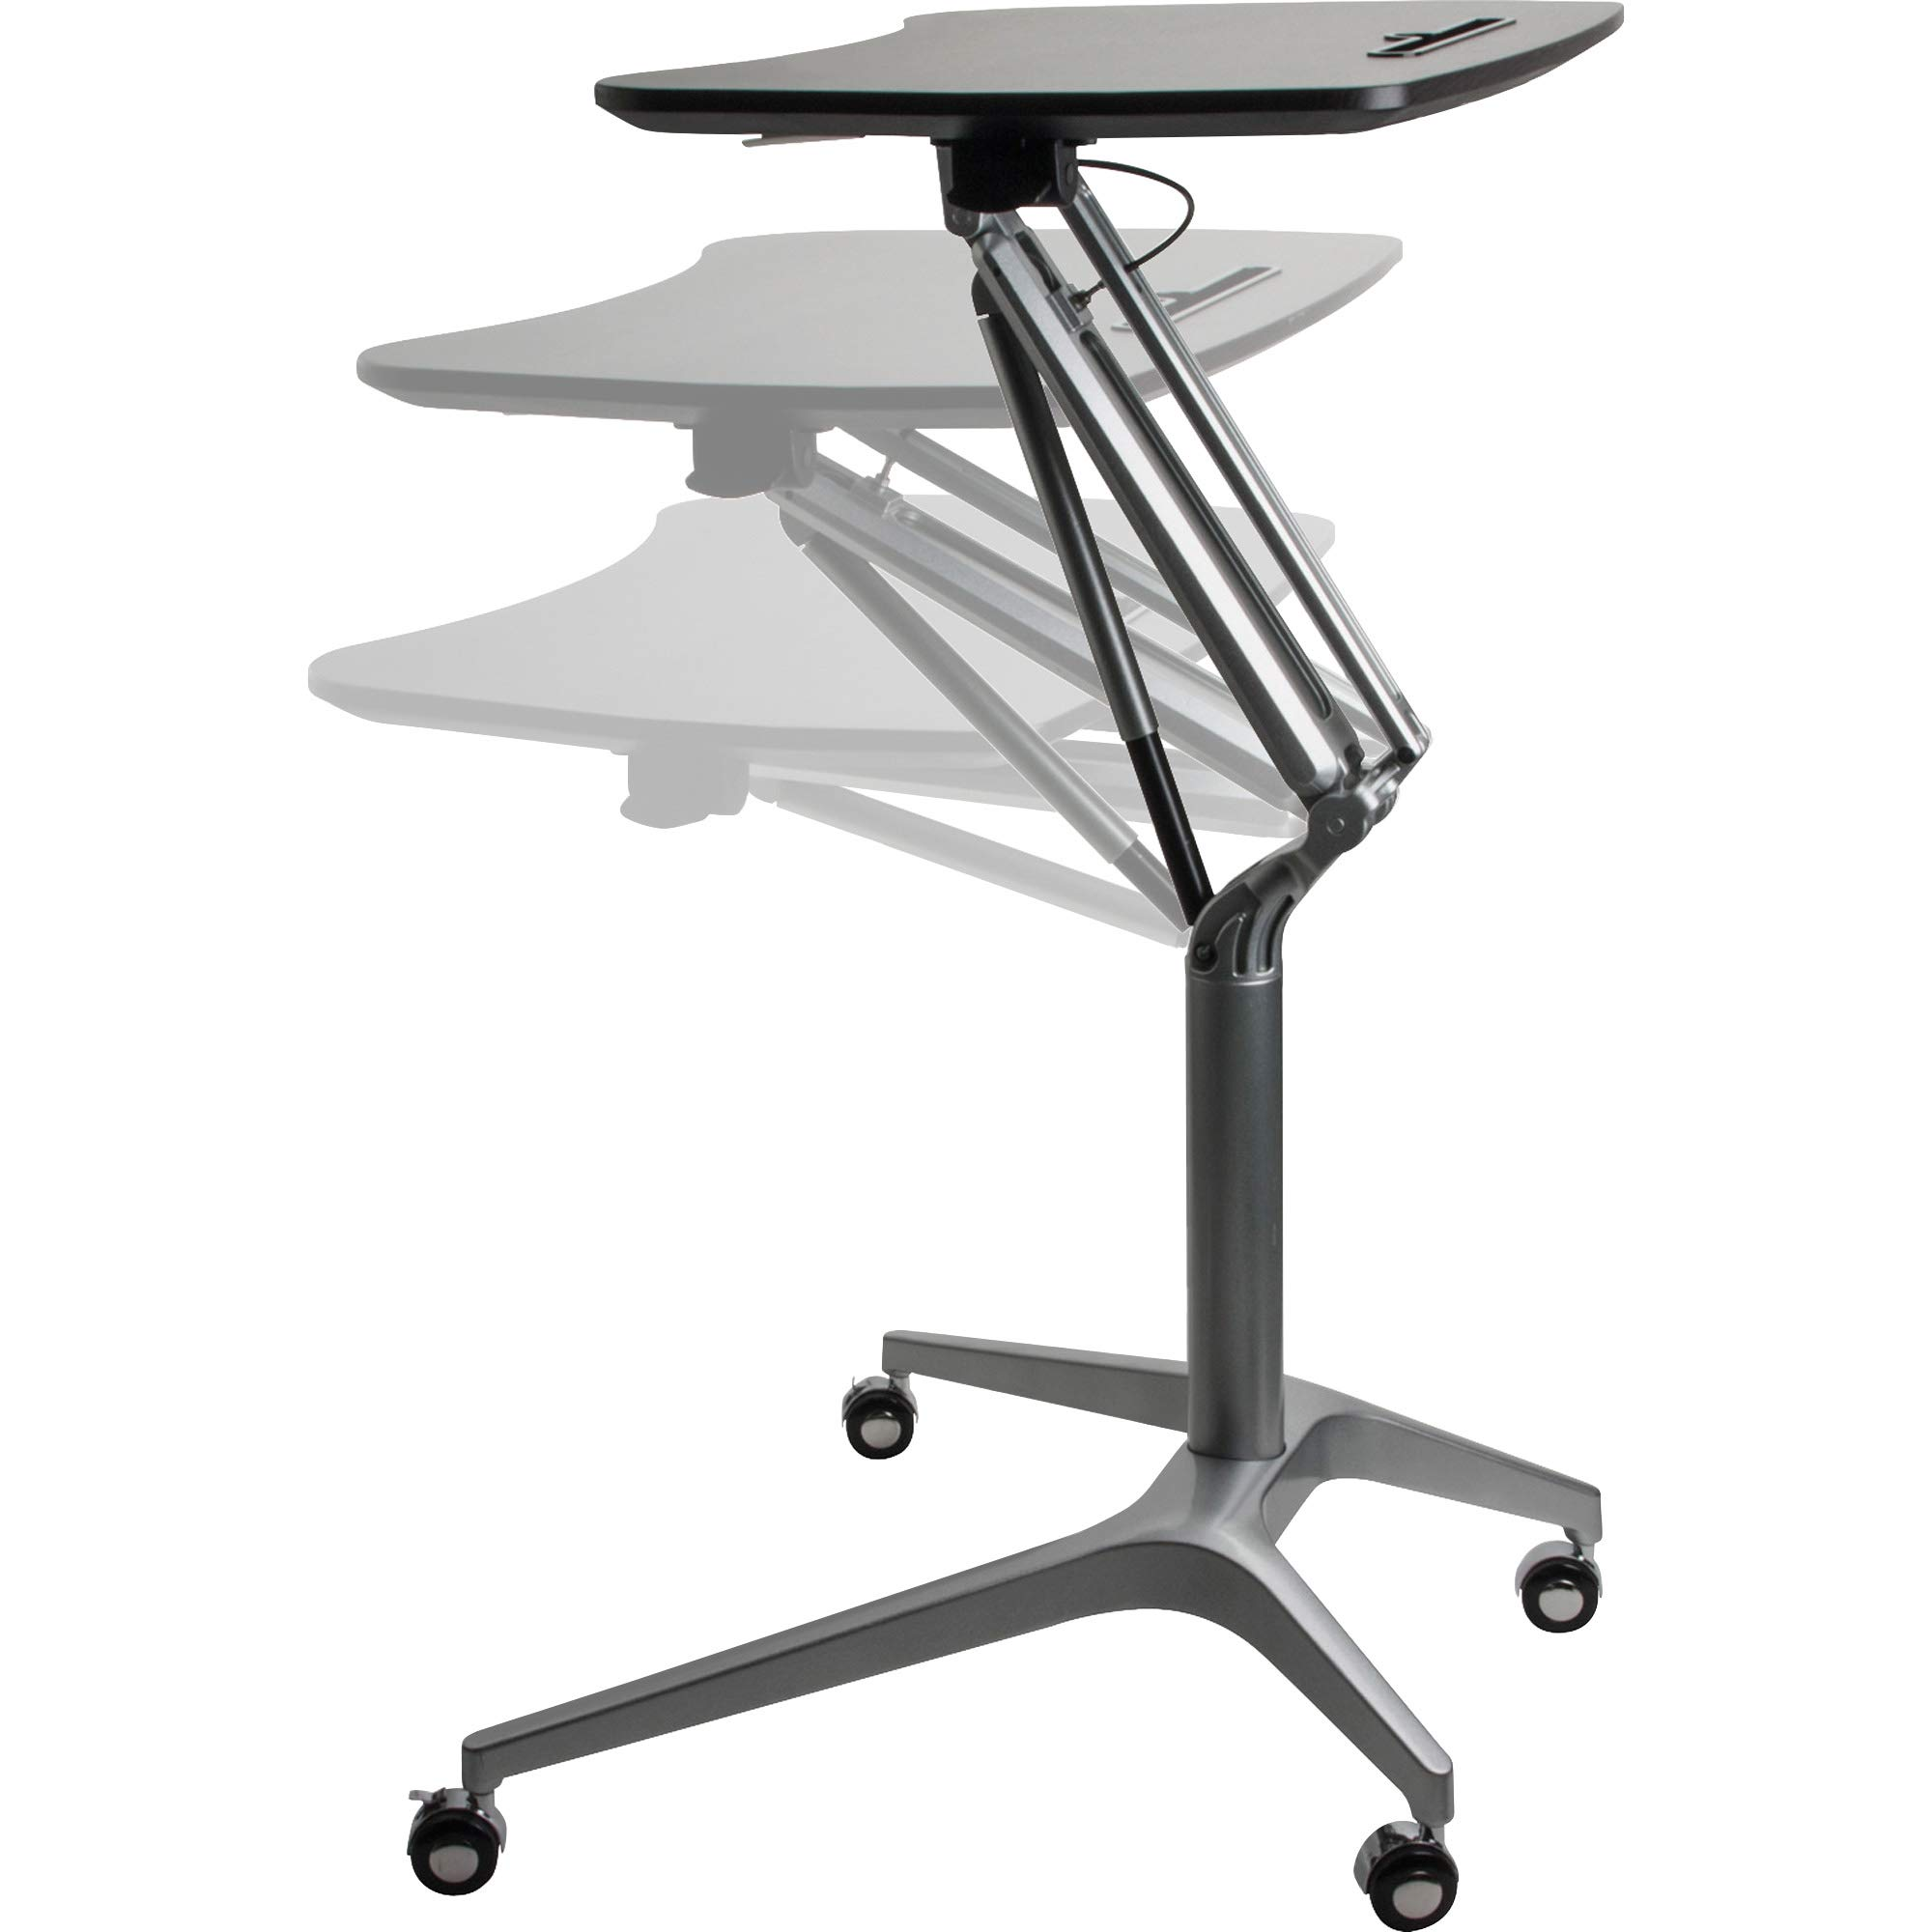 Lorell 84838 Active Office Laptop Table, Powder Coated,Black by Lorell